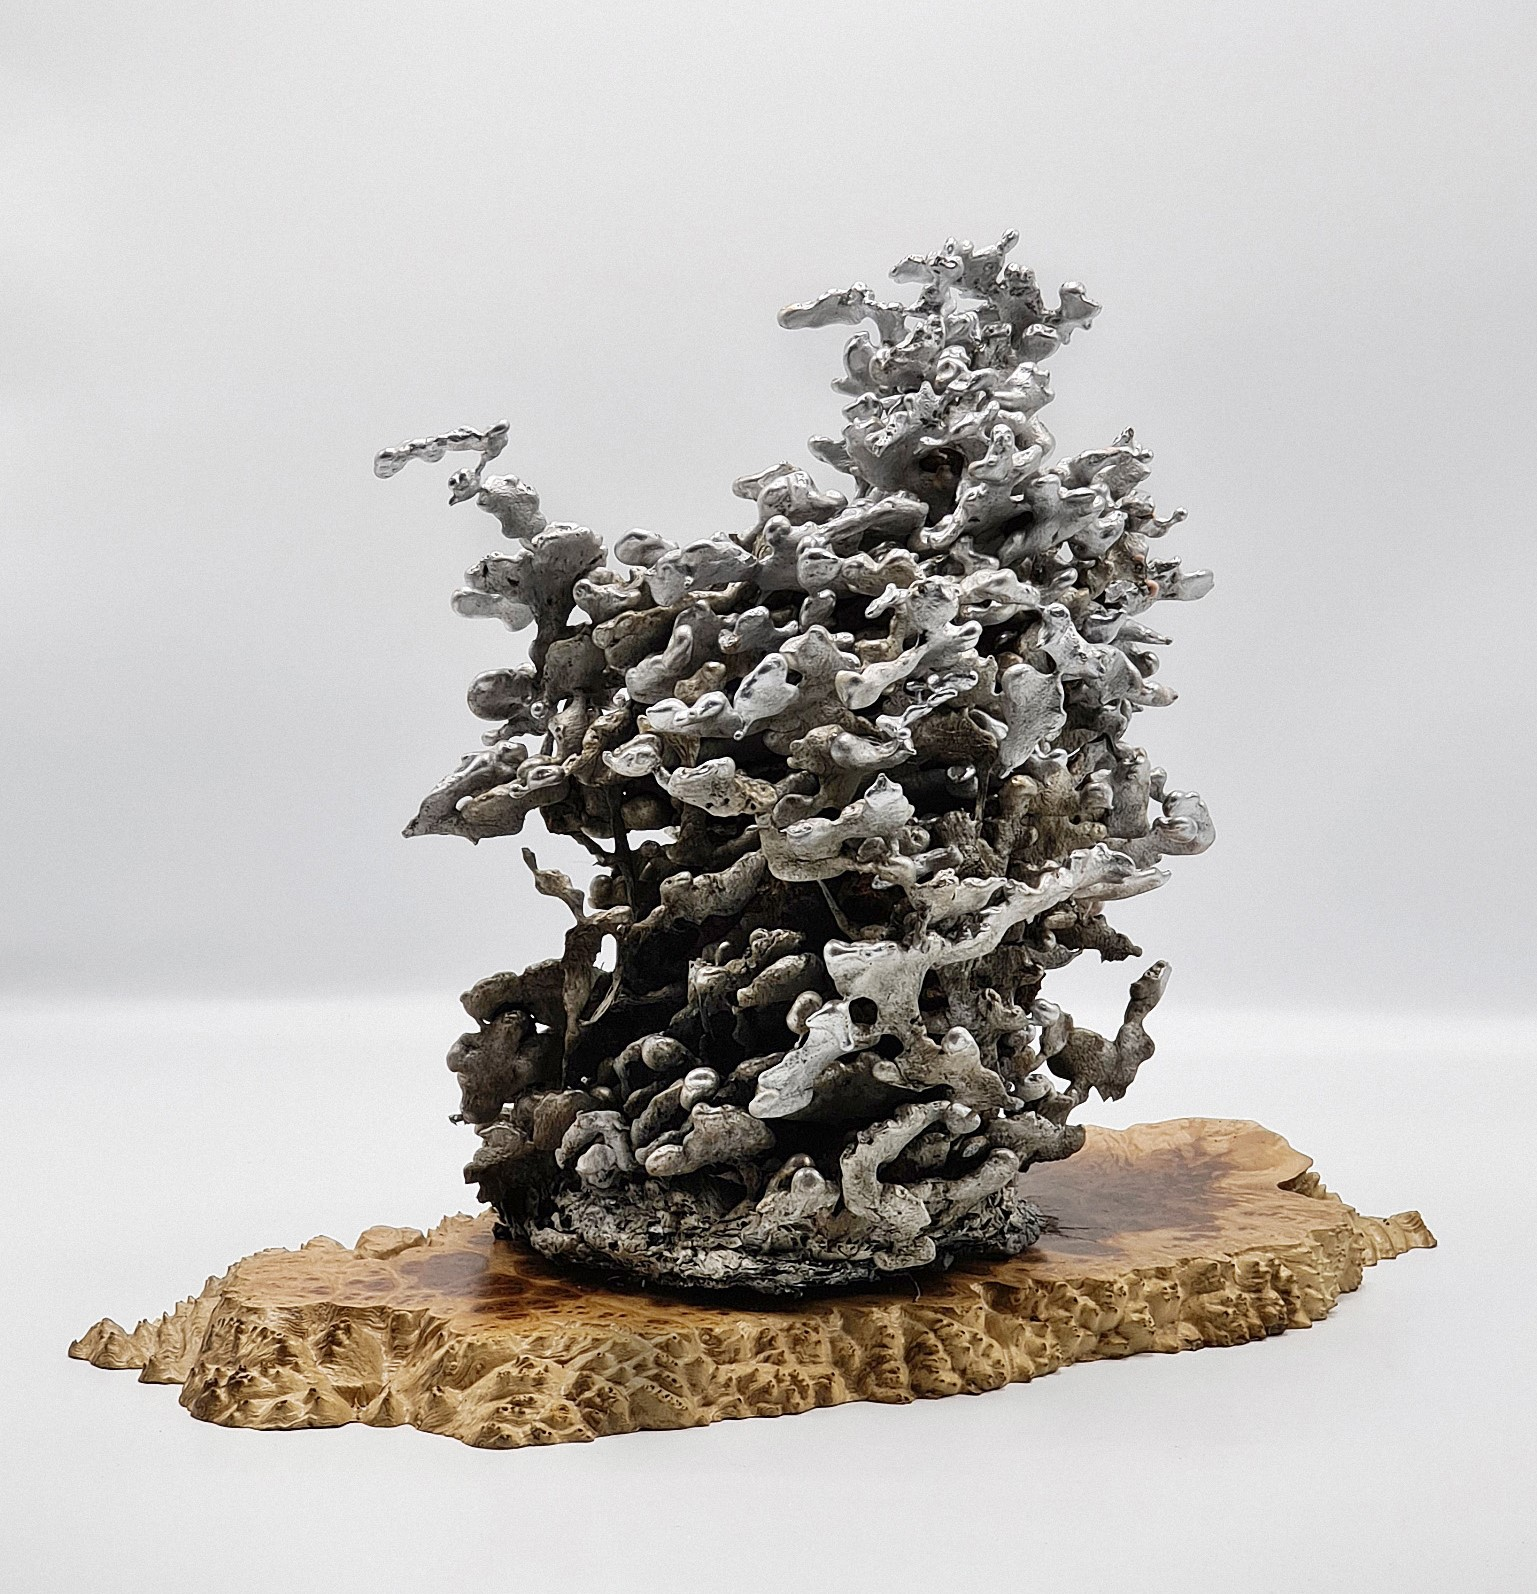 Casting with Nature I - Termites by Paul Fontanini v1